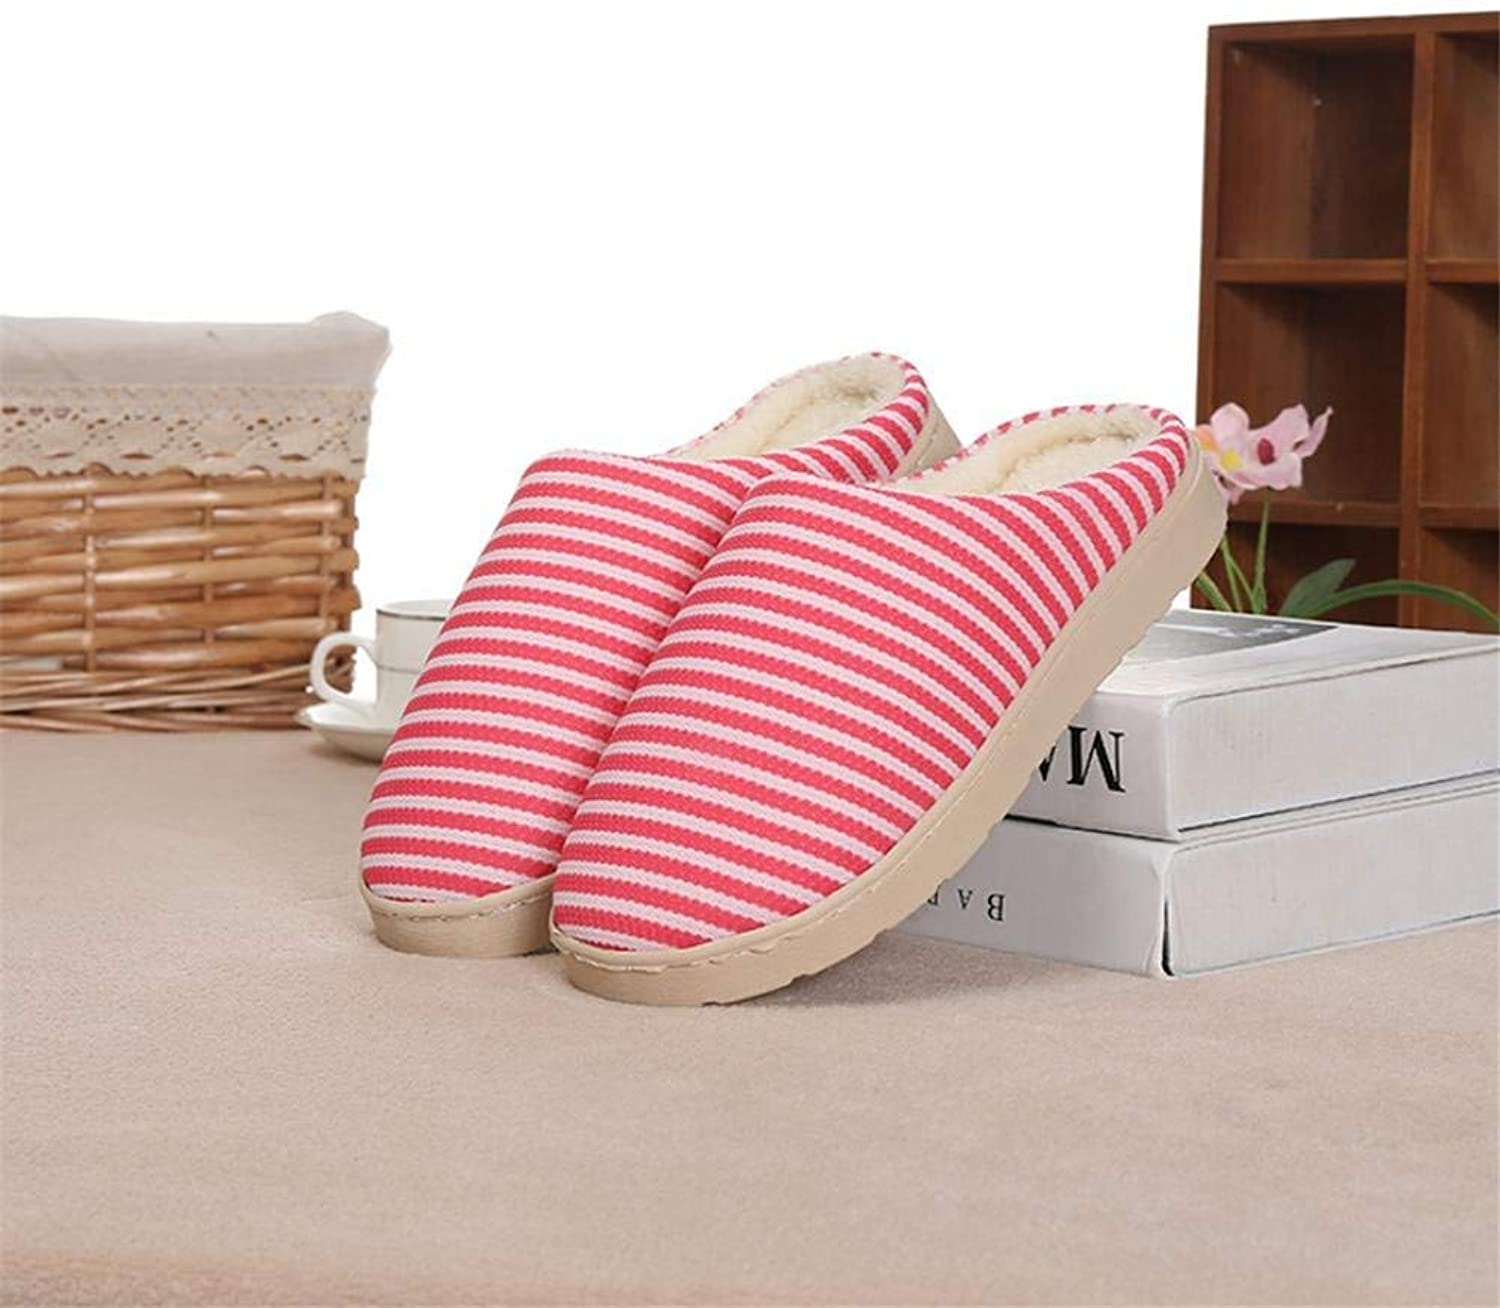 Lady Slippers Women 's Home Cotton Stripe Slippers Indoor Red Keep Warm Casual Slippers Mixed color Personality Quality for Women